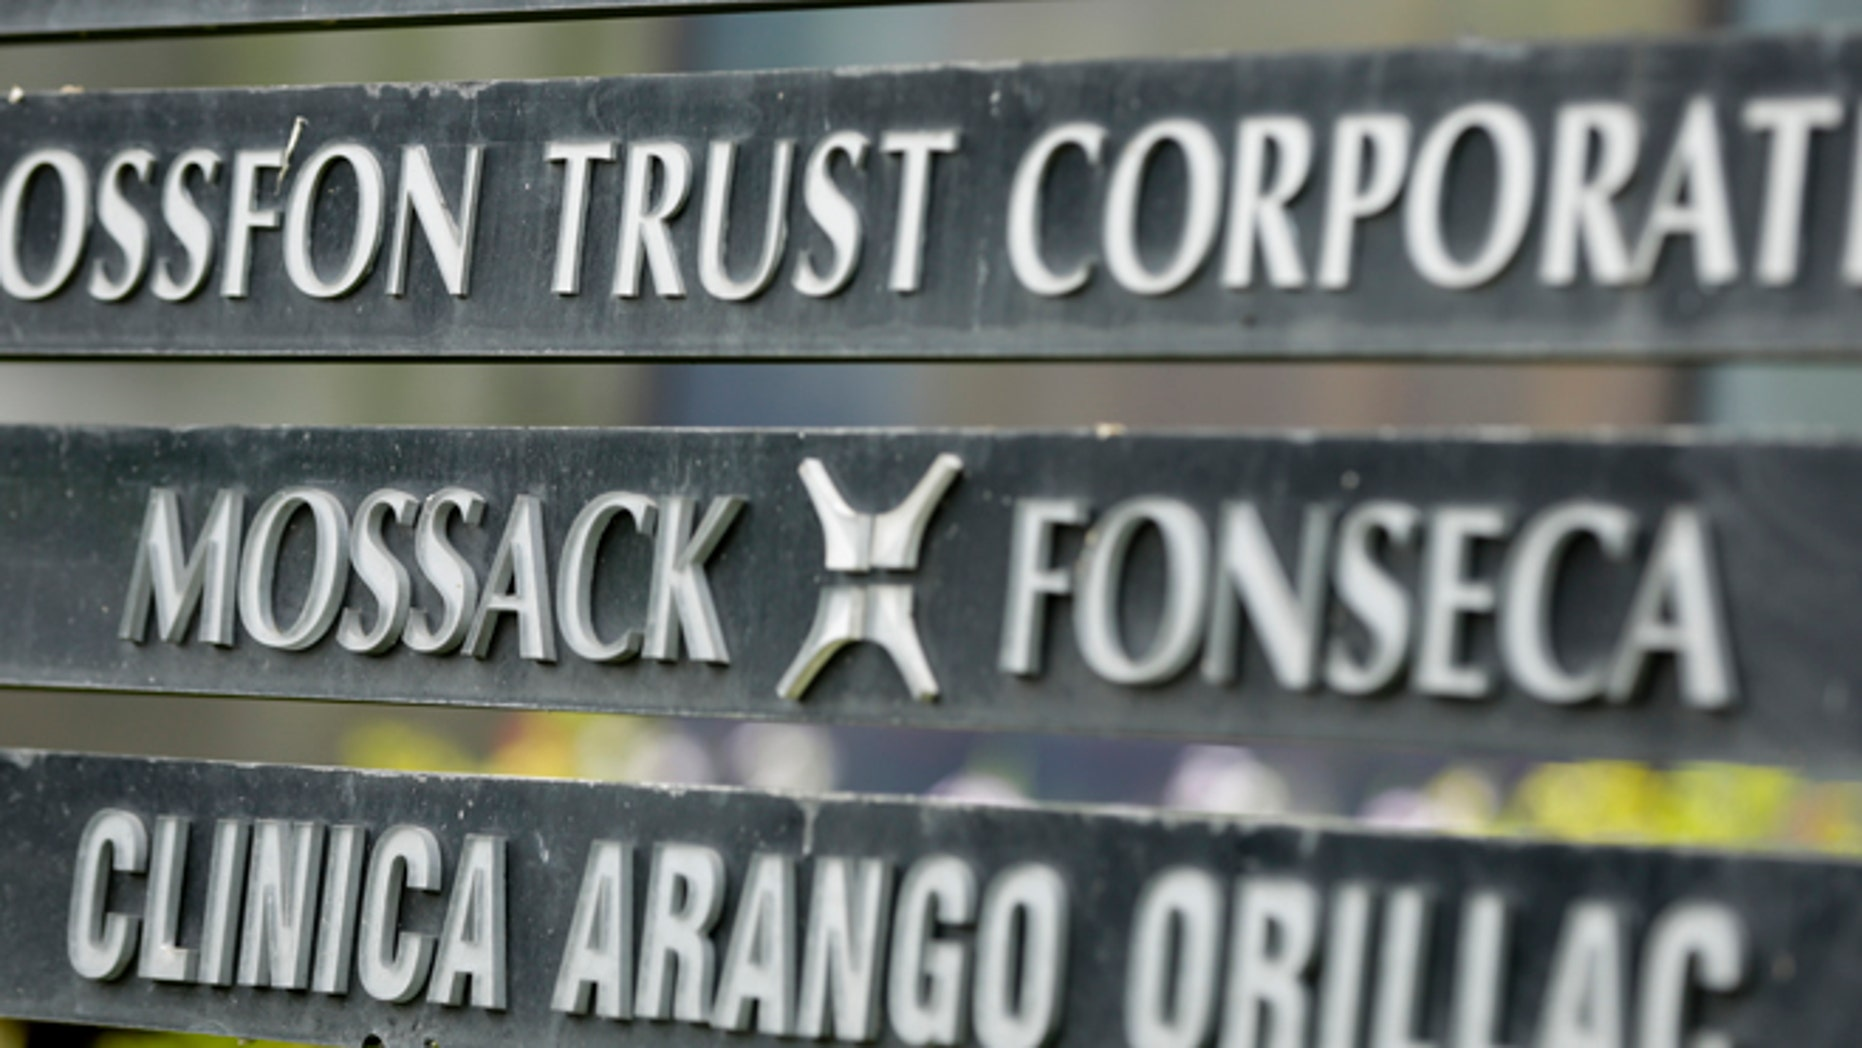 A marquee of the Arango Orillac Building lists the Mossack Fonseca law firm, in Panama City, Monday, April 4, 2016.